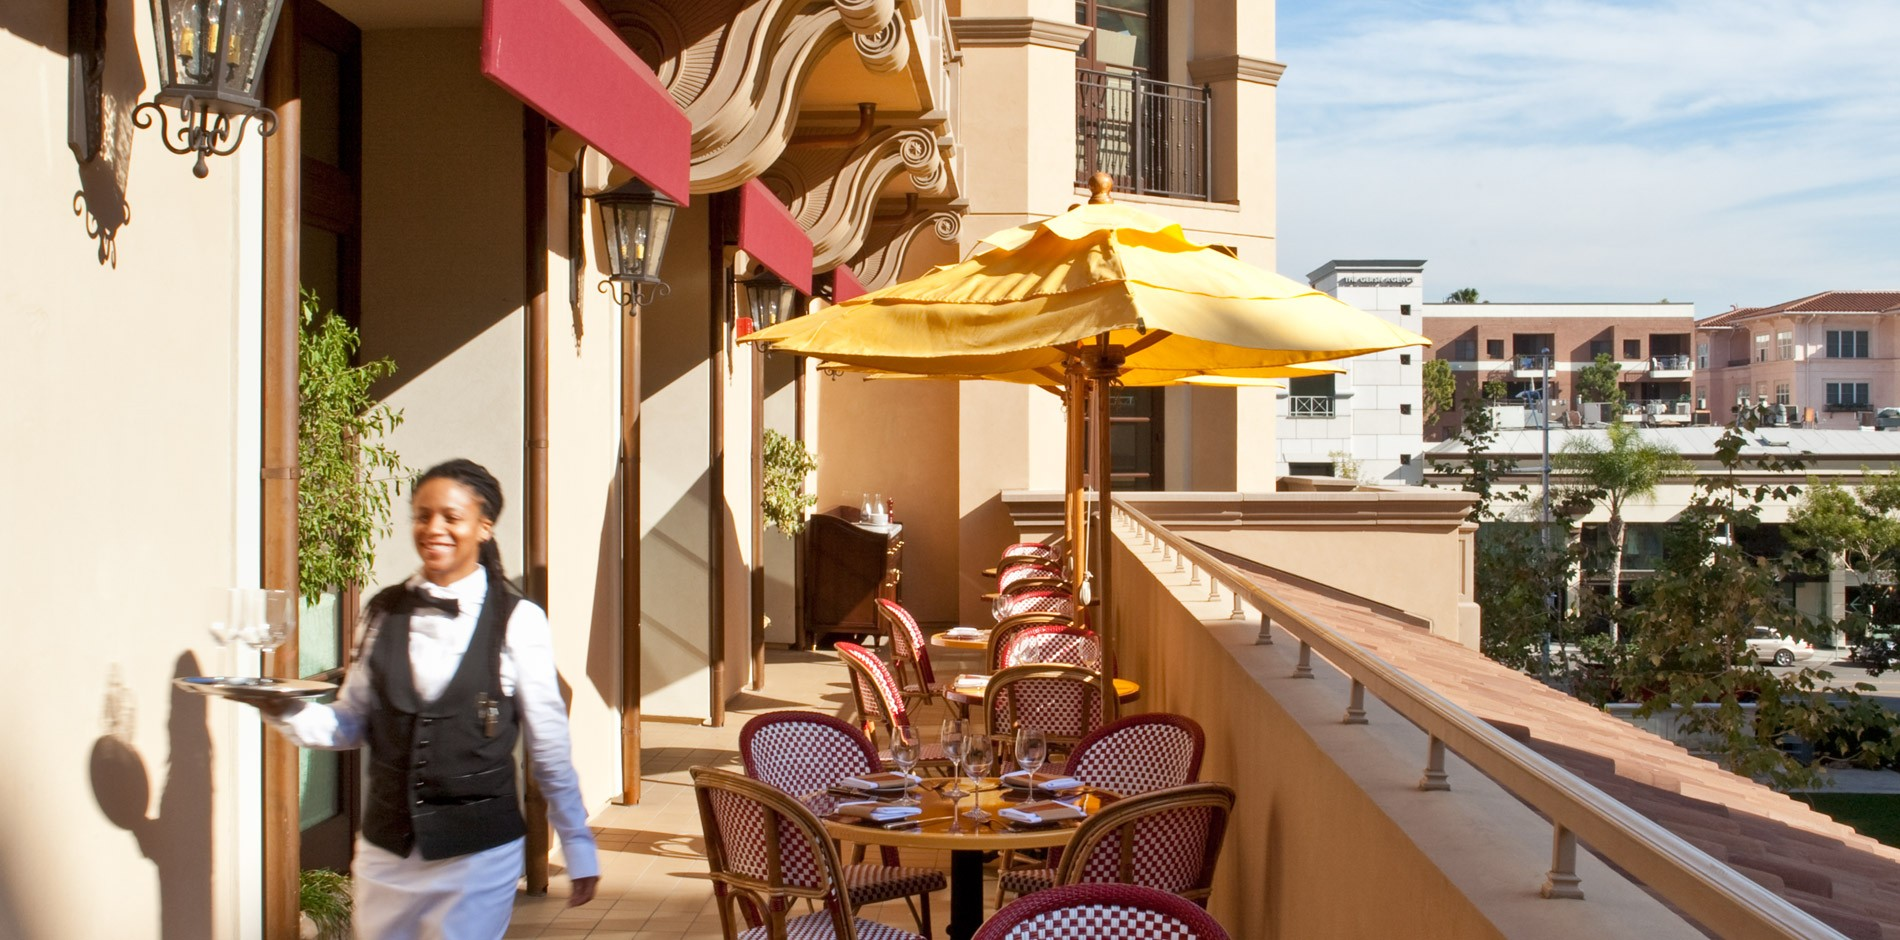 bouchon fine dining beverly hills fit out renovation